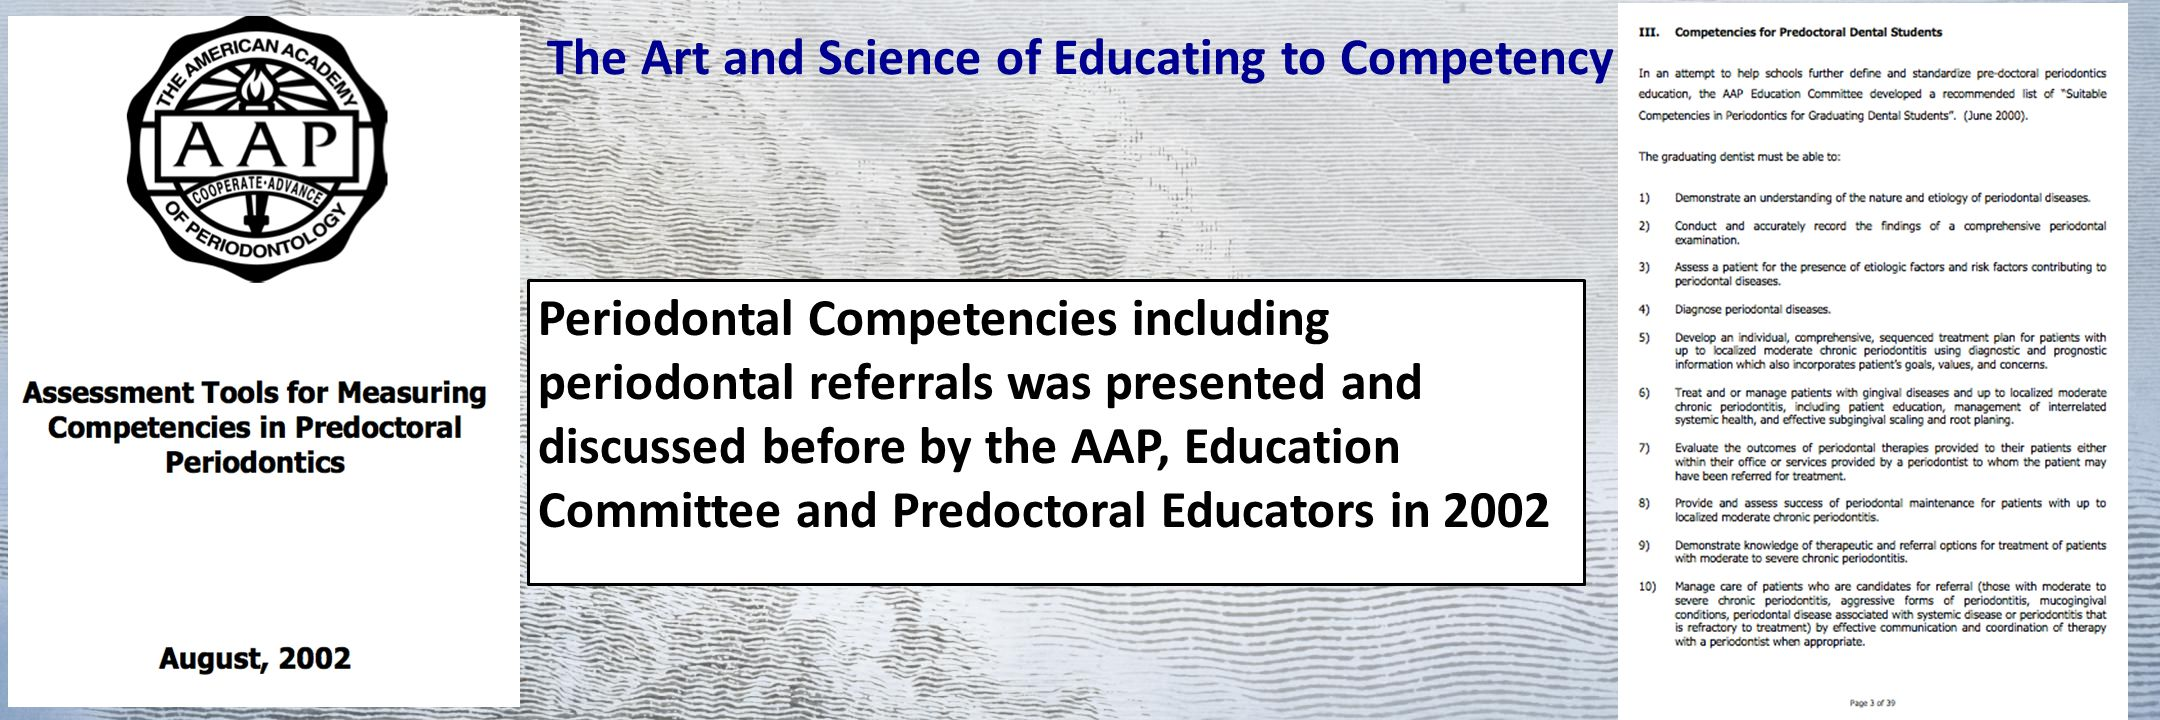 The Art and Science of Educating to Competency Periodontal Competencies including periodontal referrals was presented and discussed before by the AAP, Education Committee and Predoctoral Educators in 2002